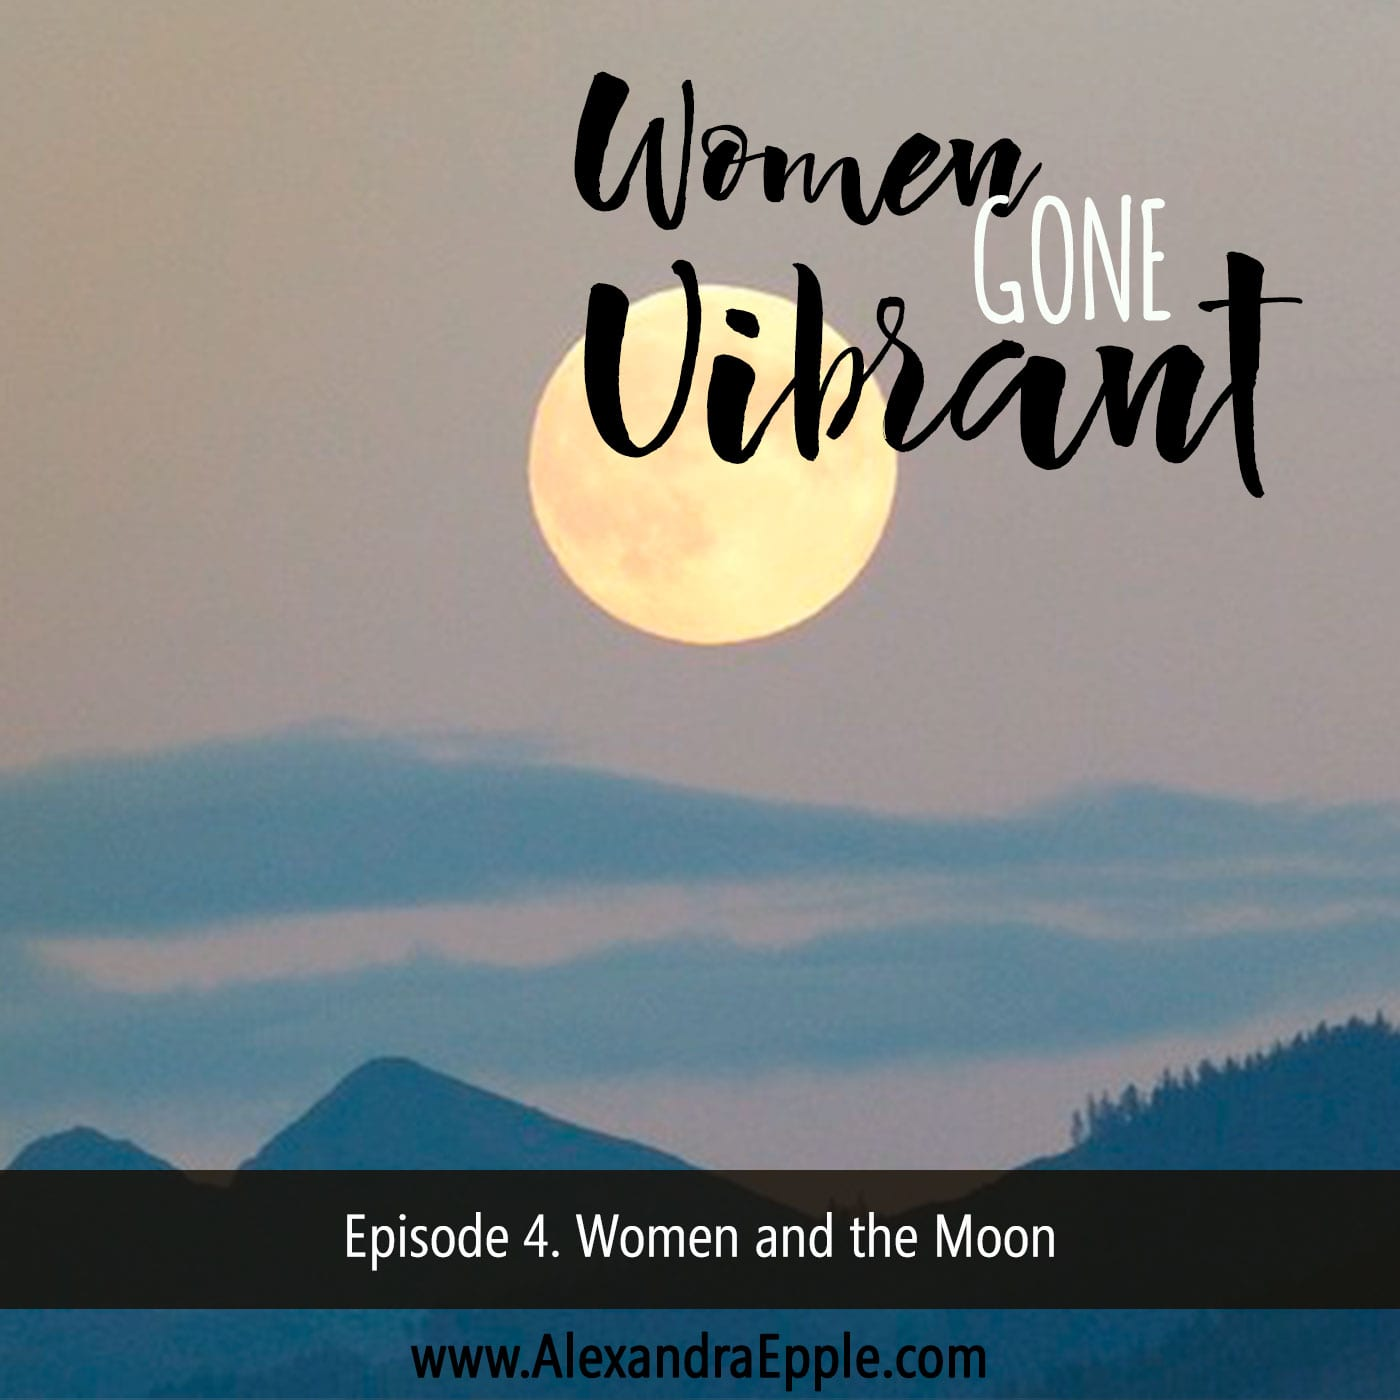 Episode 4. The women and the moon